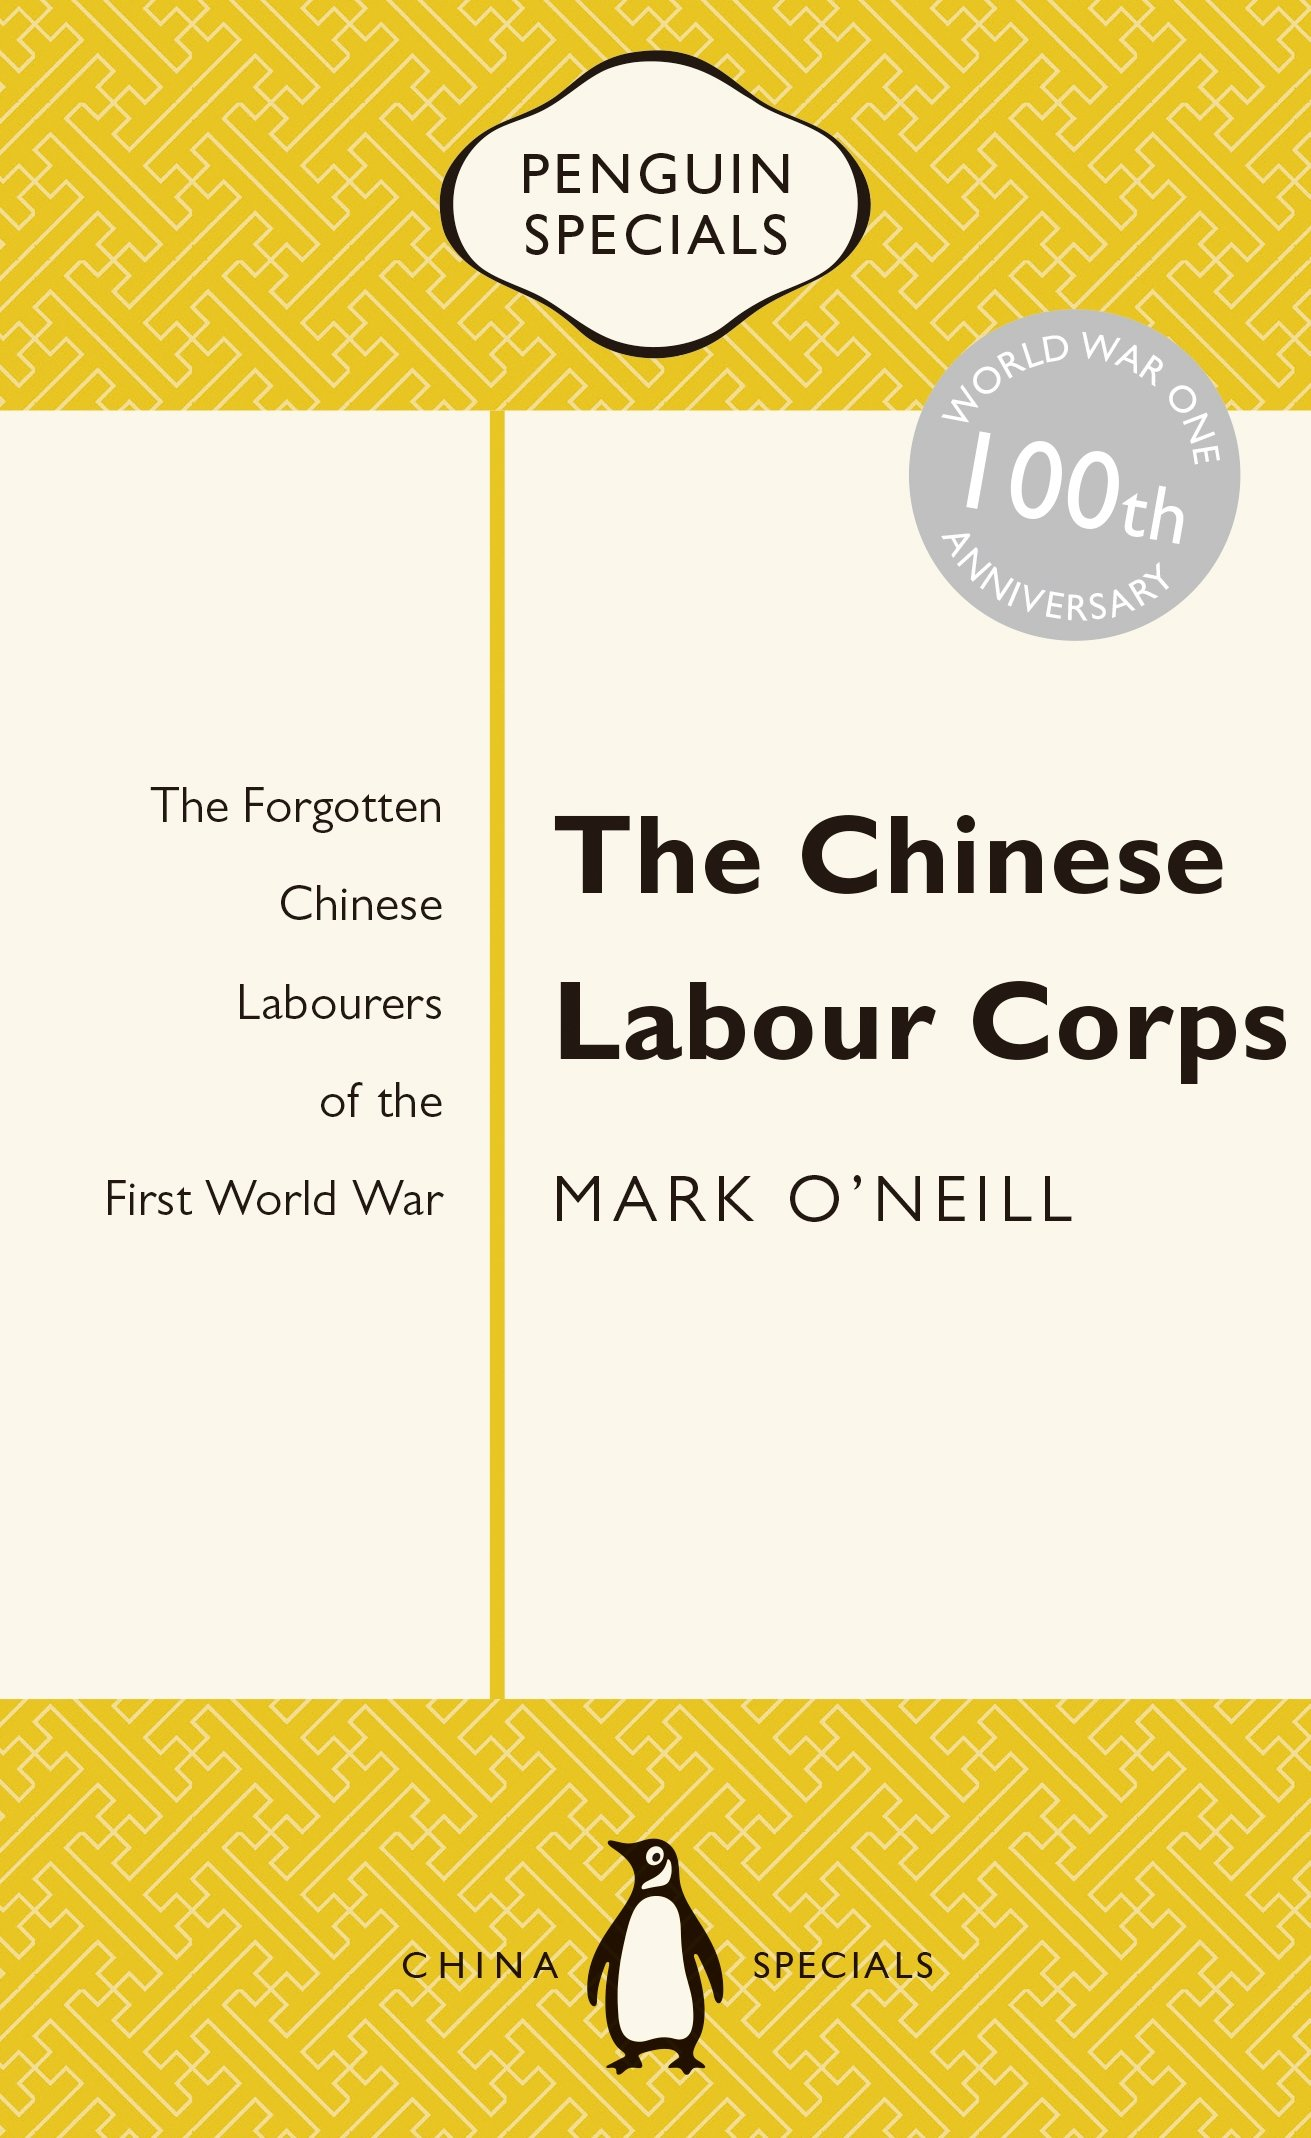 The Chinese Labour Corps: The Forgotten Chinese Labourers of the First  World War (Penguin Specials): Mark O'Neill: 9780143800316: Amazon.com: Books